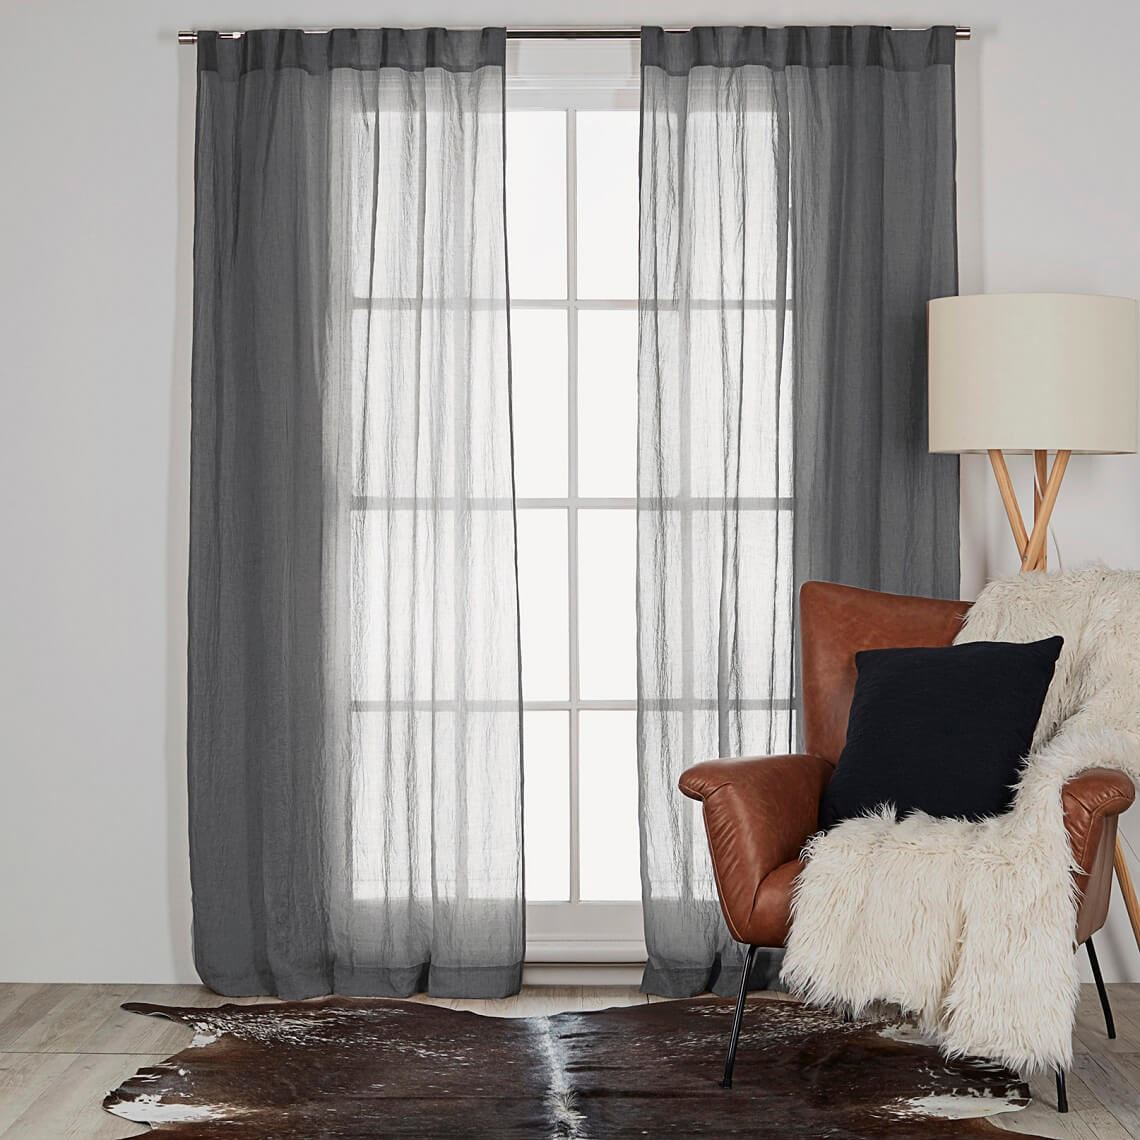 Angus Sheer Tab Top Curtain Size W 140cm x D 0cm x H 230cm in Charcoal 100% Polyester Freedom by Freedom, a Curtains for sale on Style Sourcebook